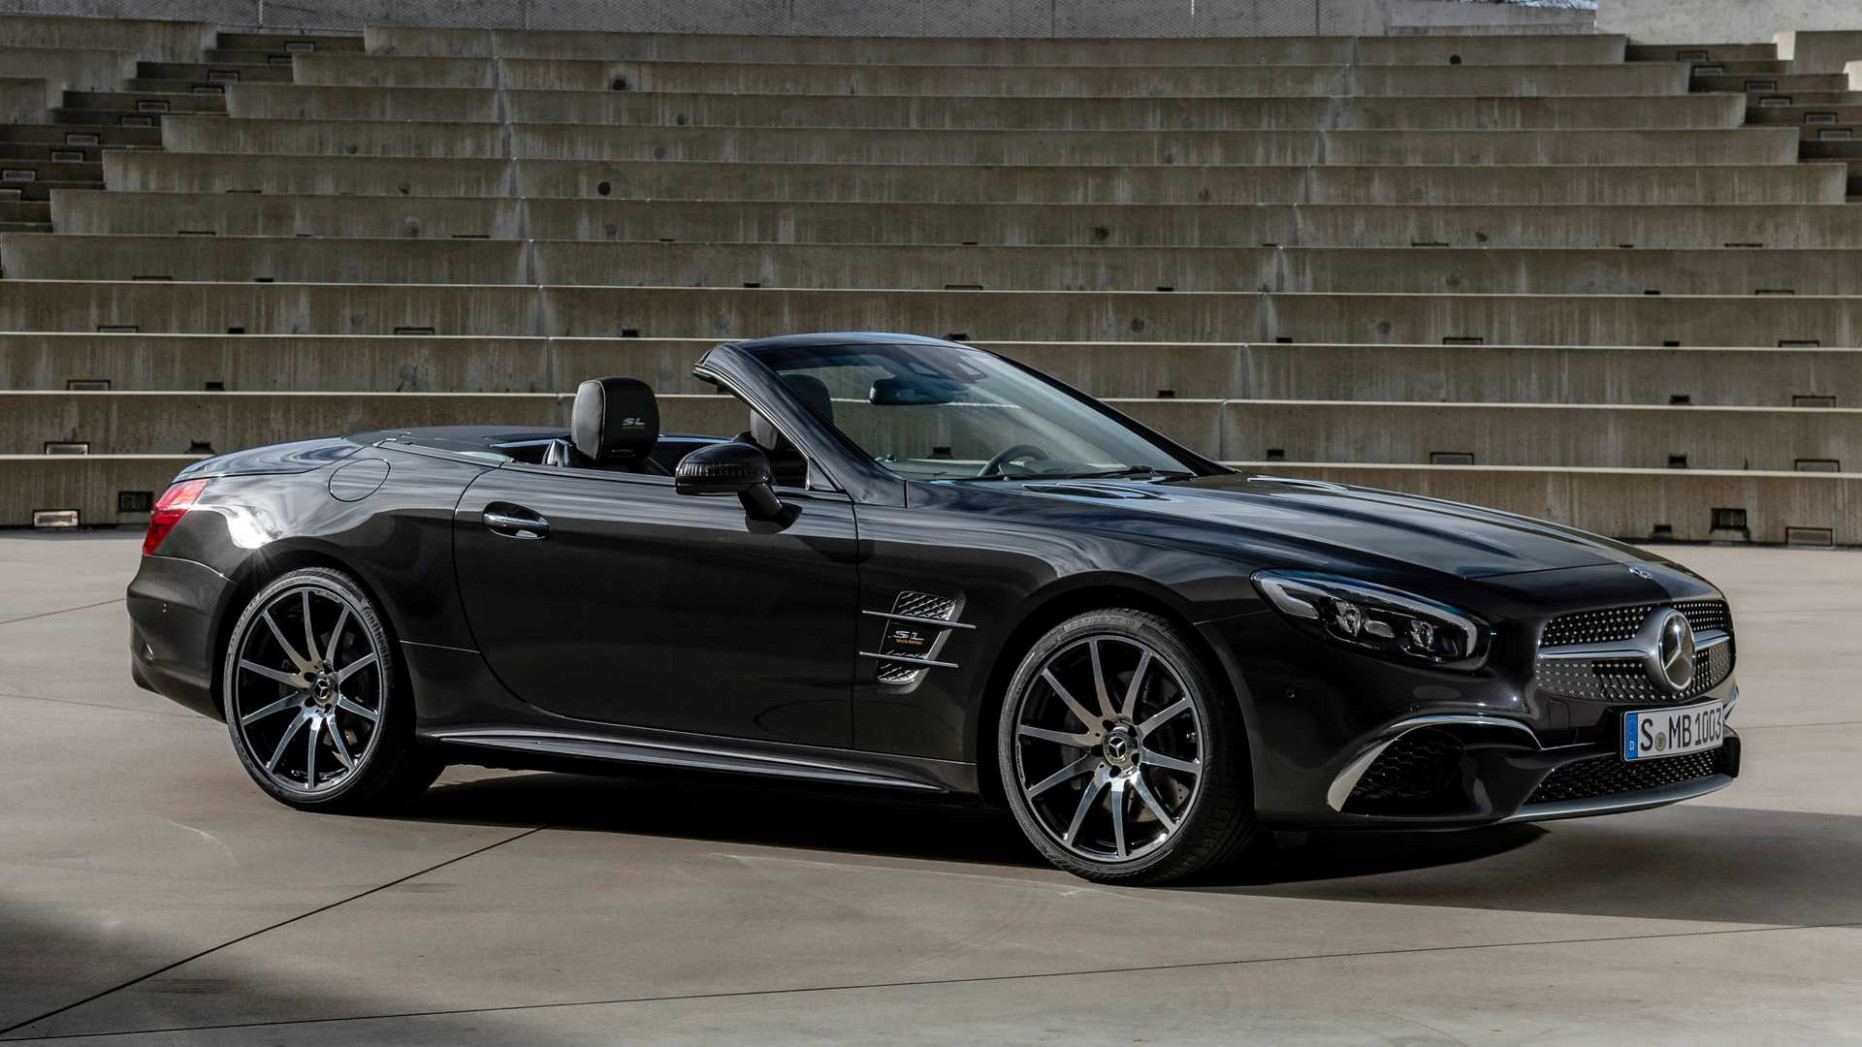 7 Mercedes SL-Class Grand Edition Debuts With Posh Upgrades - 2020 mercedes sl550